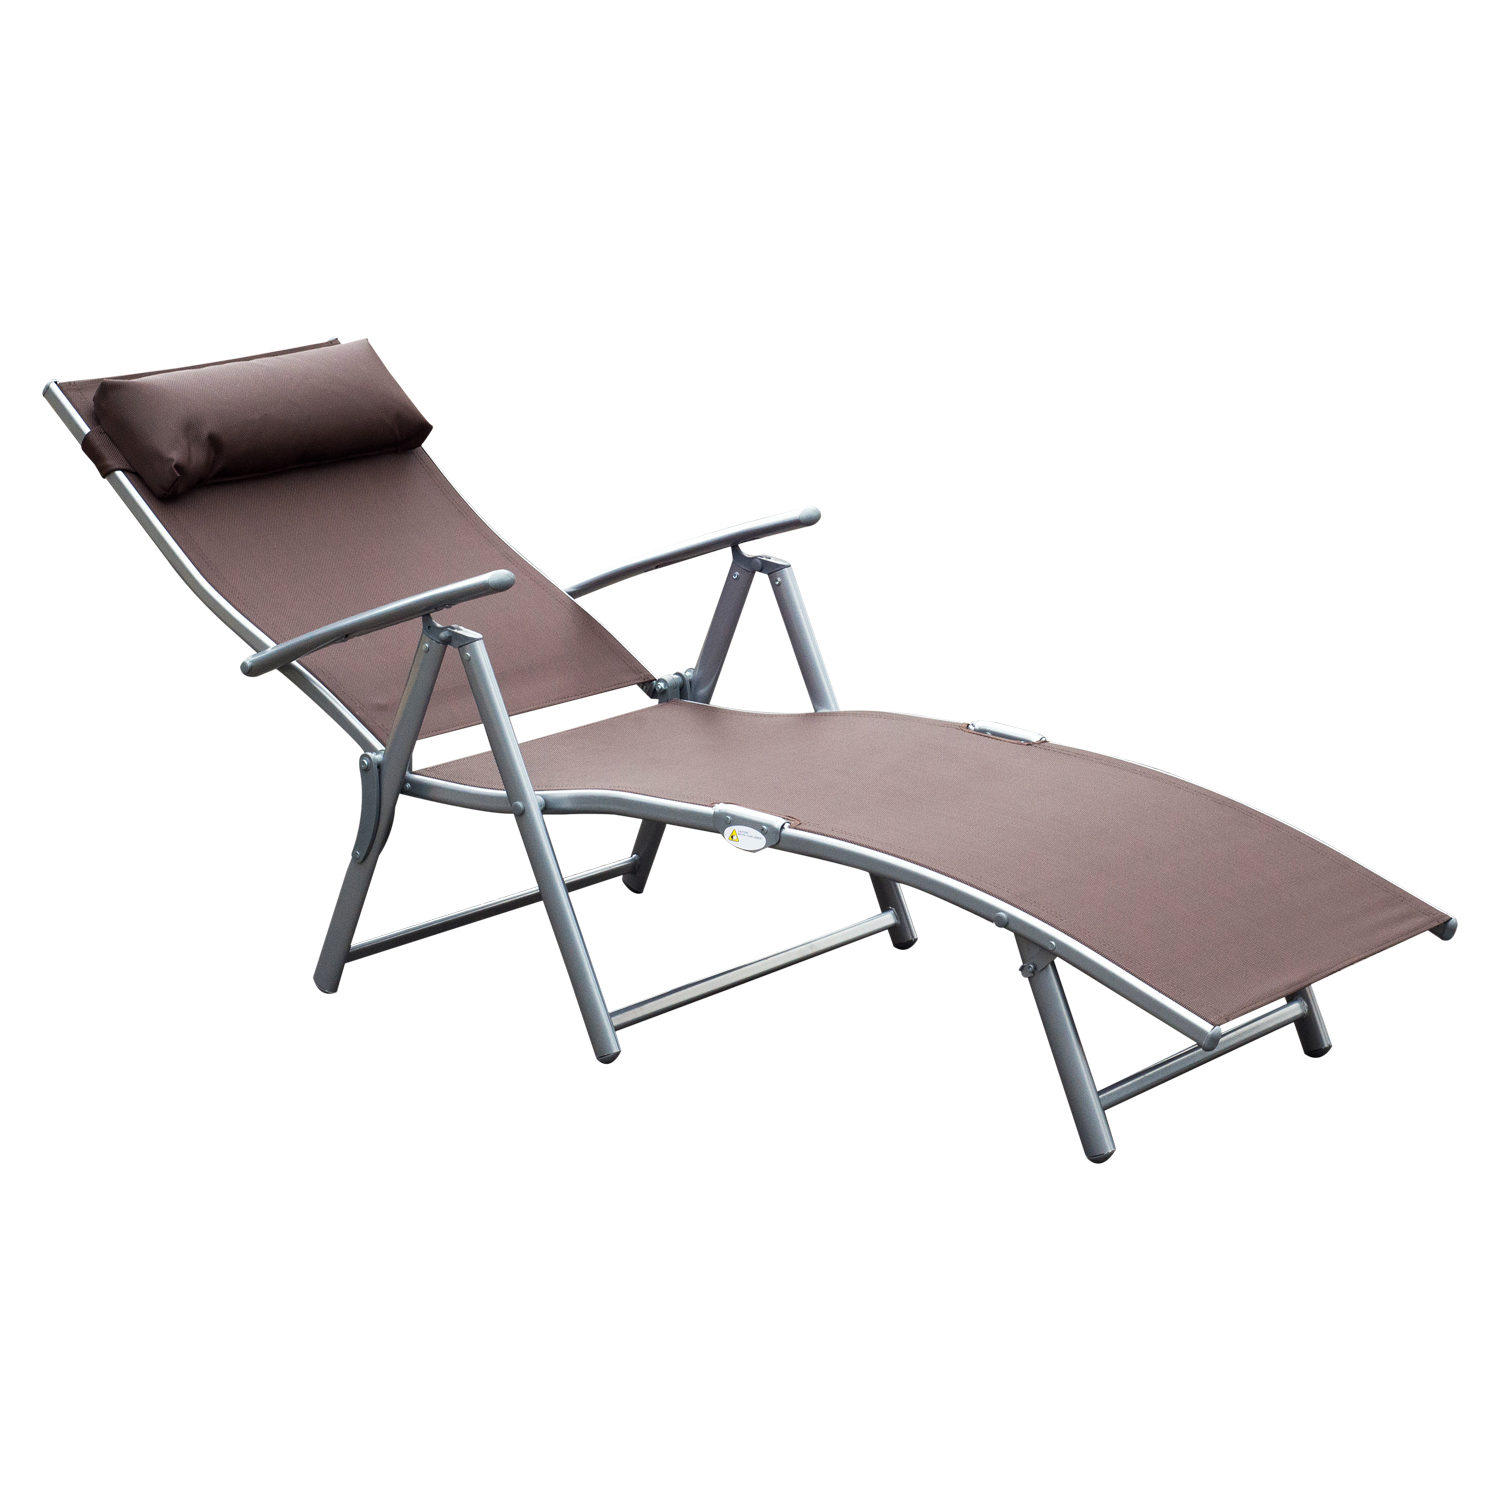 beachcrest reviews pdx home wayfair lounge wood tifany outdoor chaise